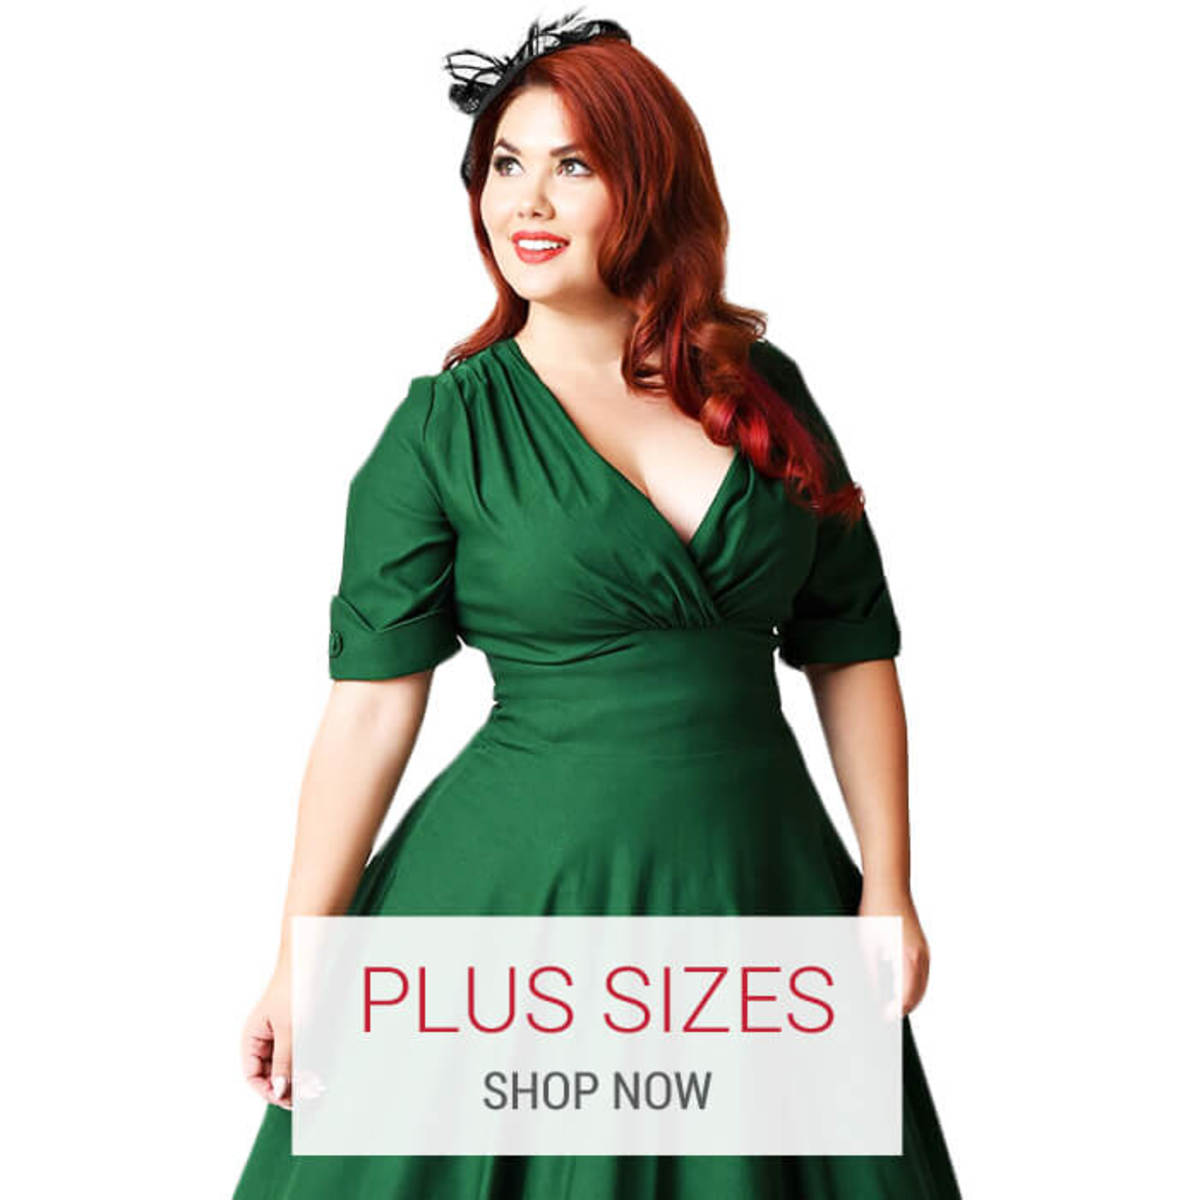 Atomic Cherry offers retro and rockabilly clothing for sizes 14 and up.